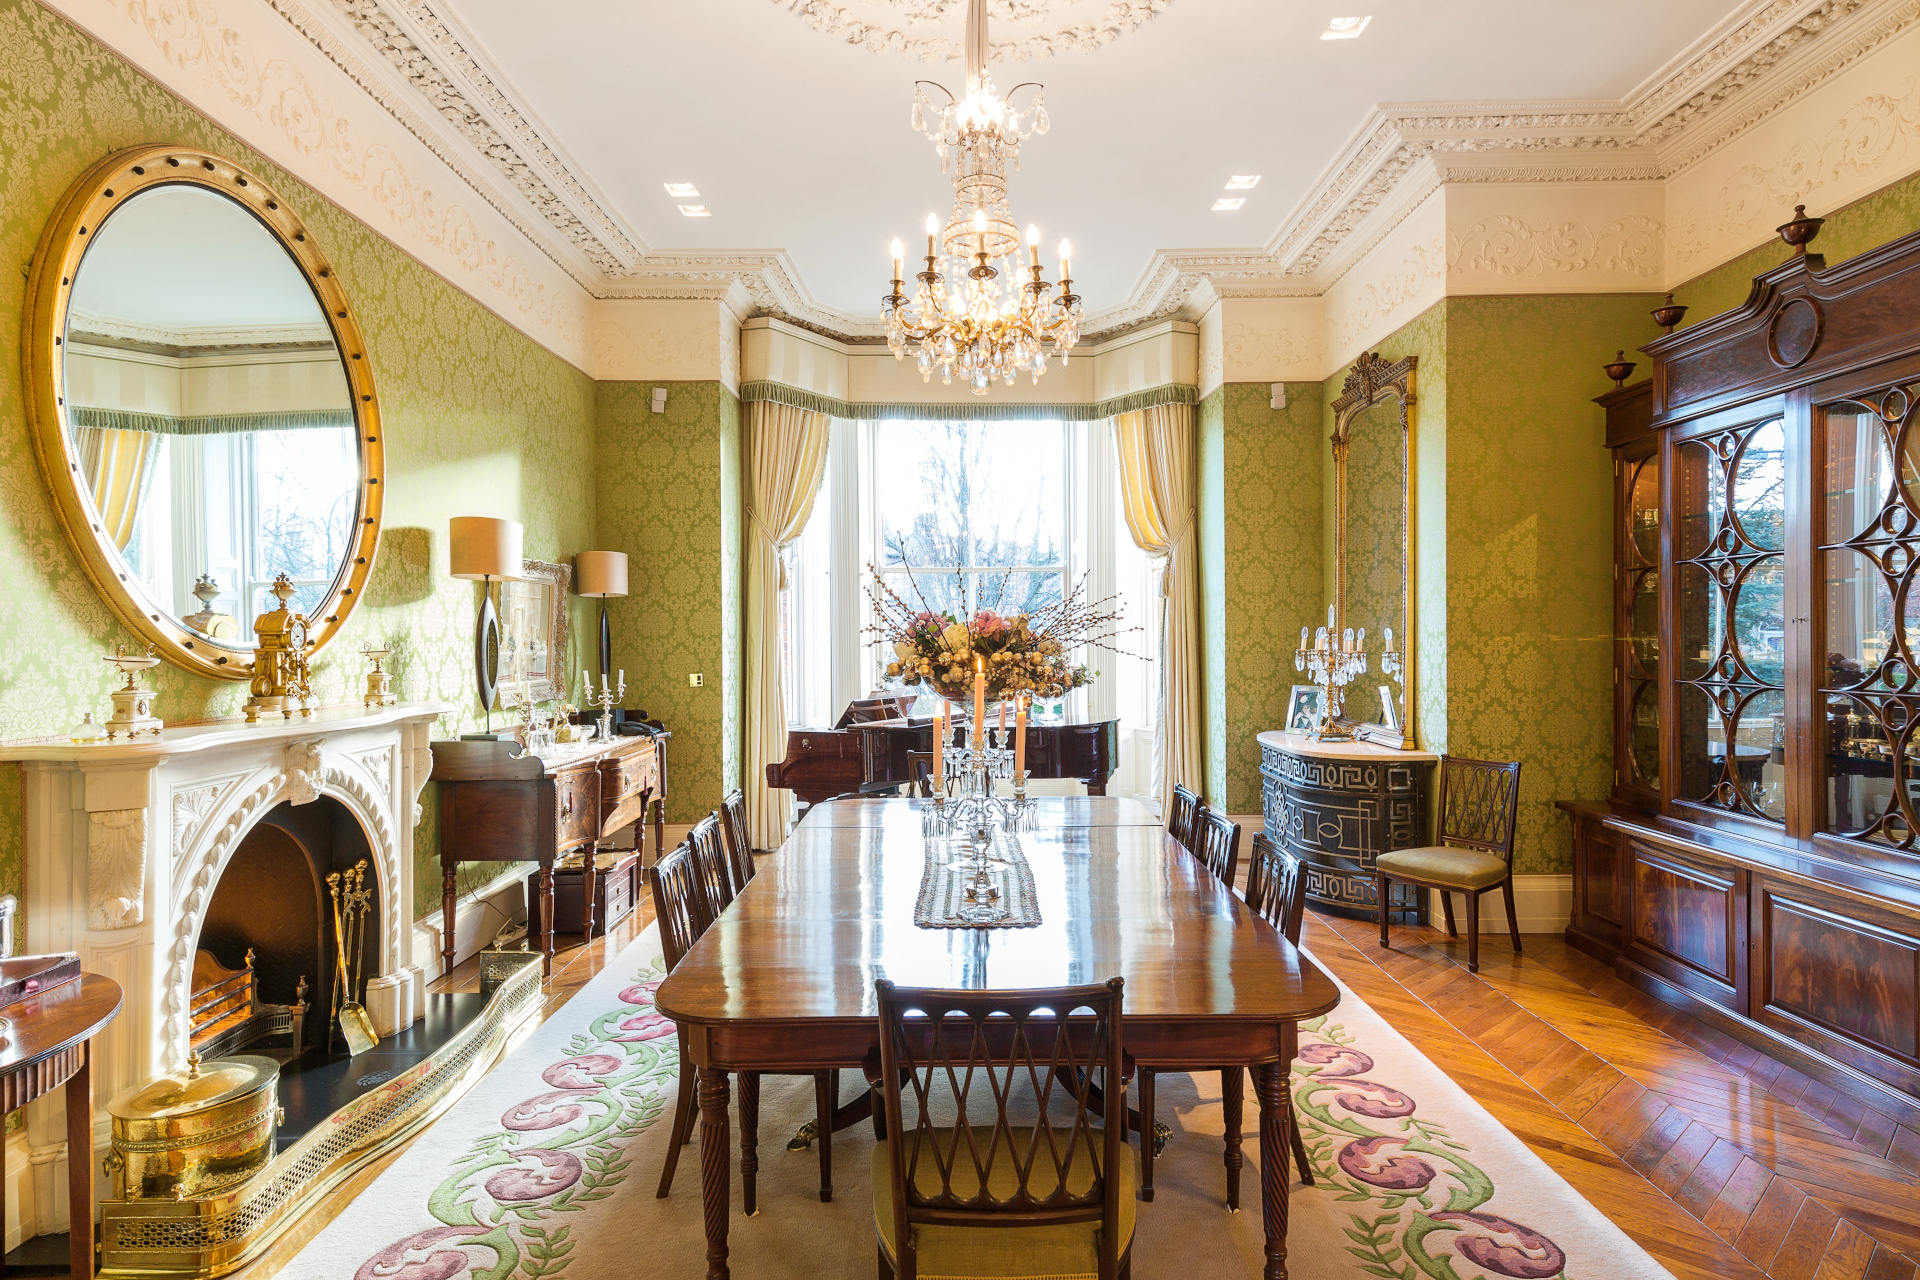 Lavish green dining room with beautiful crown molding. Filled with lots of natural light and high end furnishings.